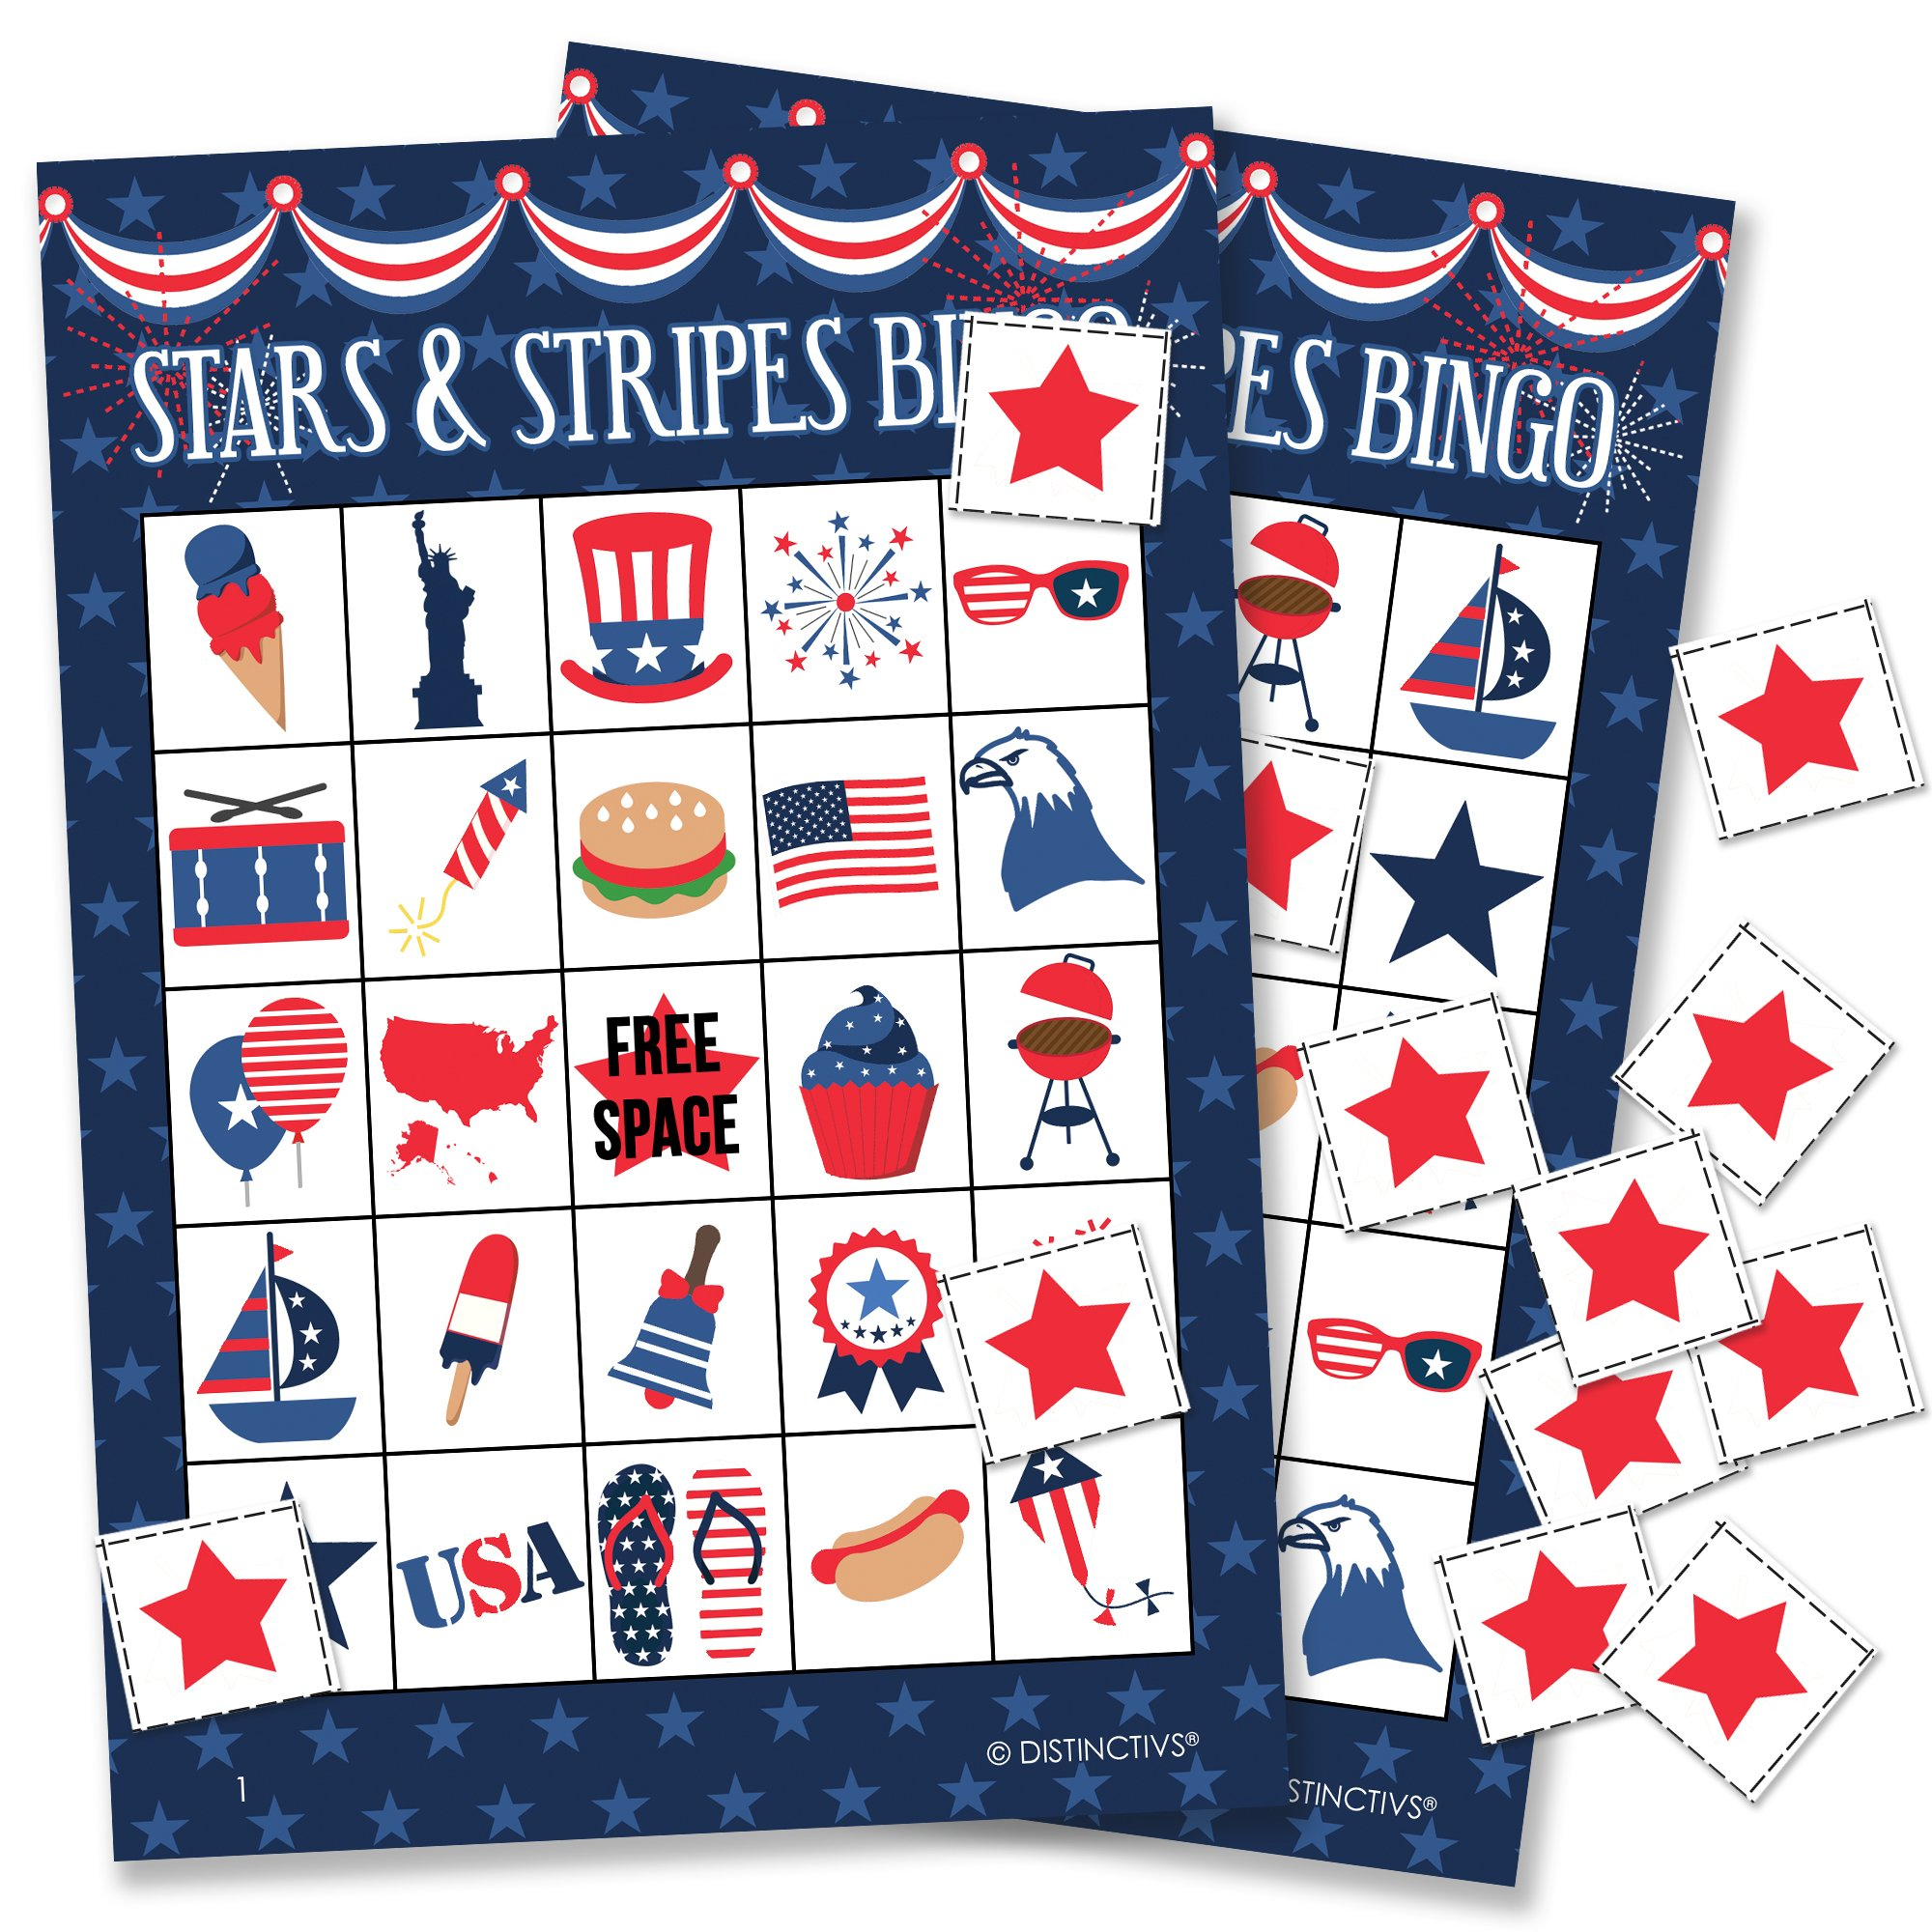 Patriotic Stars and Stripes Bingo Game for Kids - 24 Players by DISTINCTIVS